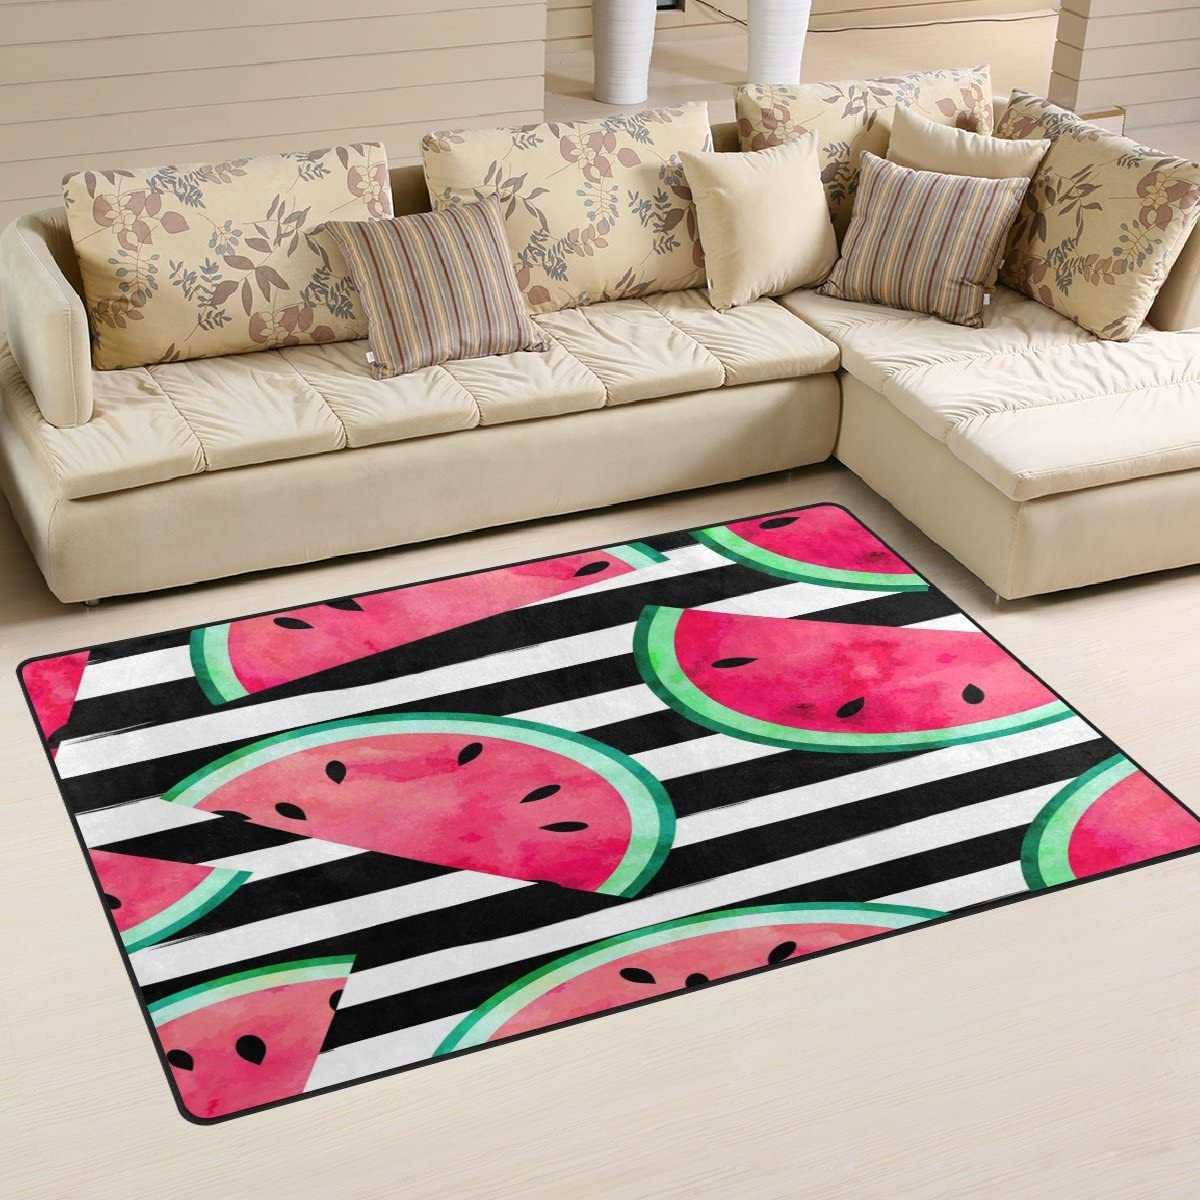 WOZO Fruity Watercolor Watermelon Stripe Area Rug Rugs Non-Slip Floor Mat Doormats Living Dining Room Bedroom Dorm 60 x 39 inches inches Home Decor